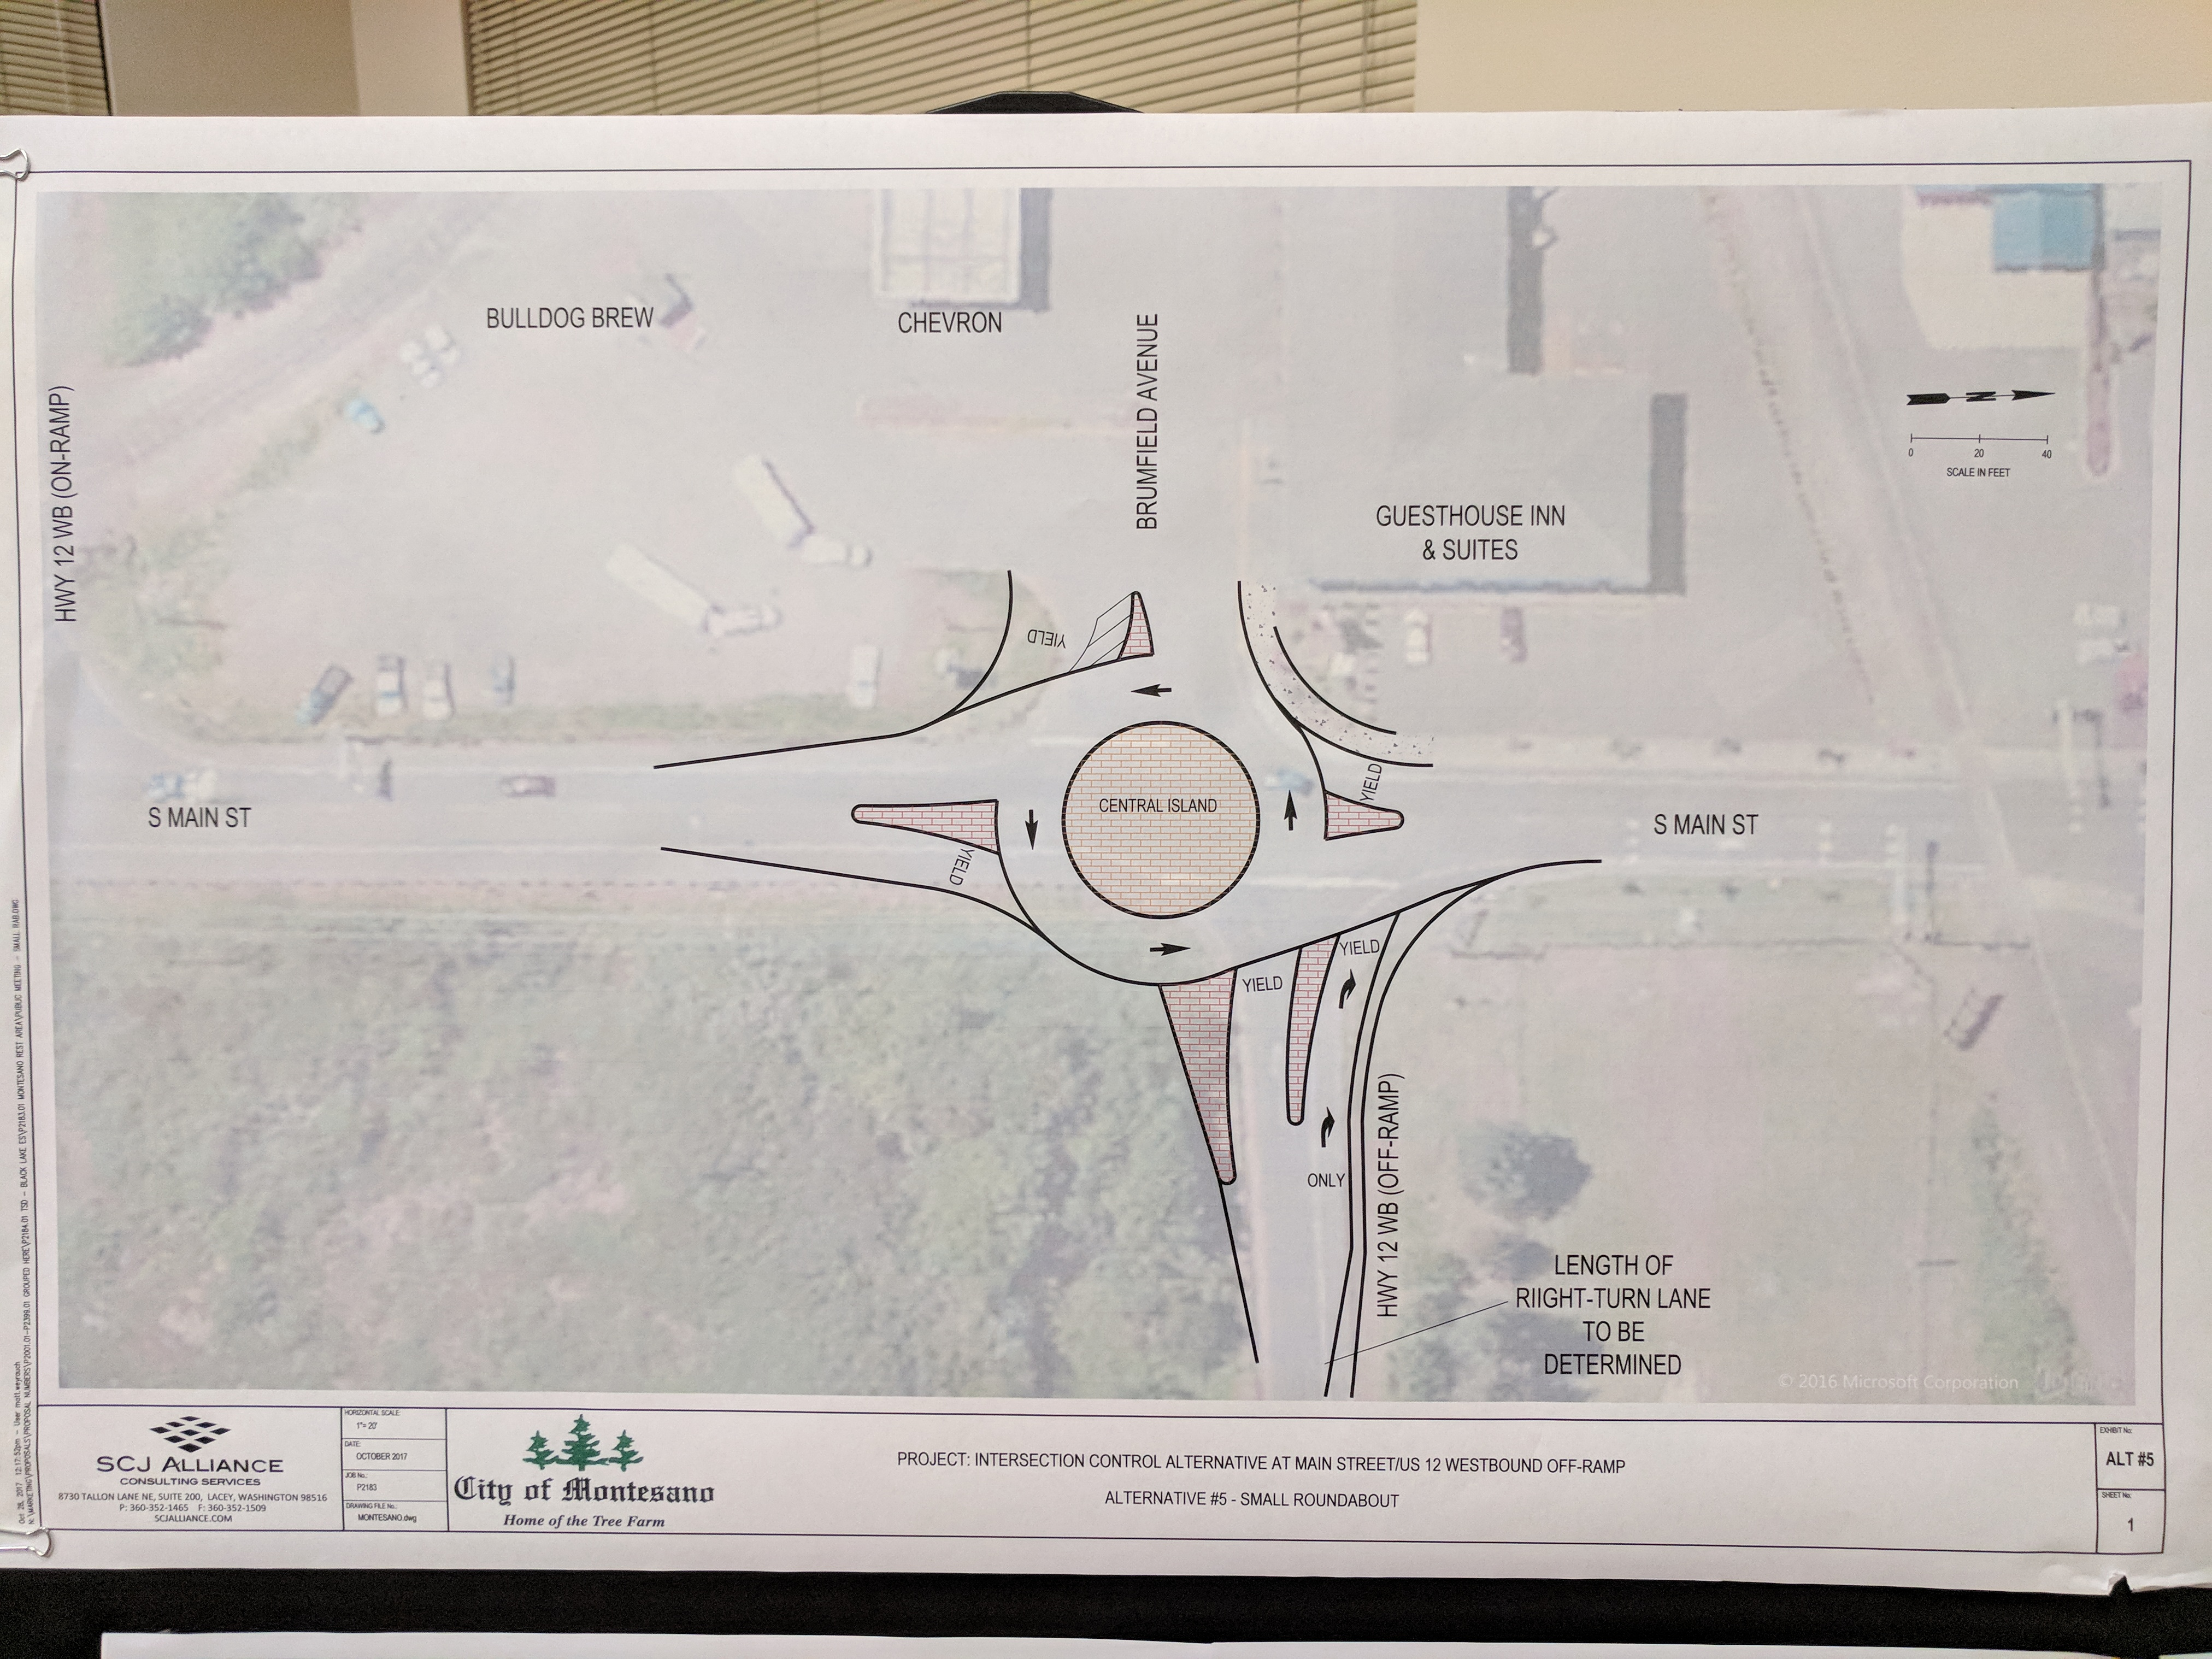 Montesano Officials Detail Proposals For Exit Ramp on South